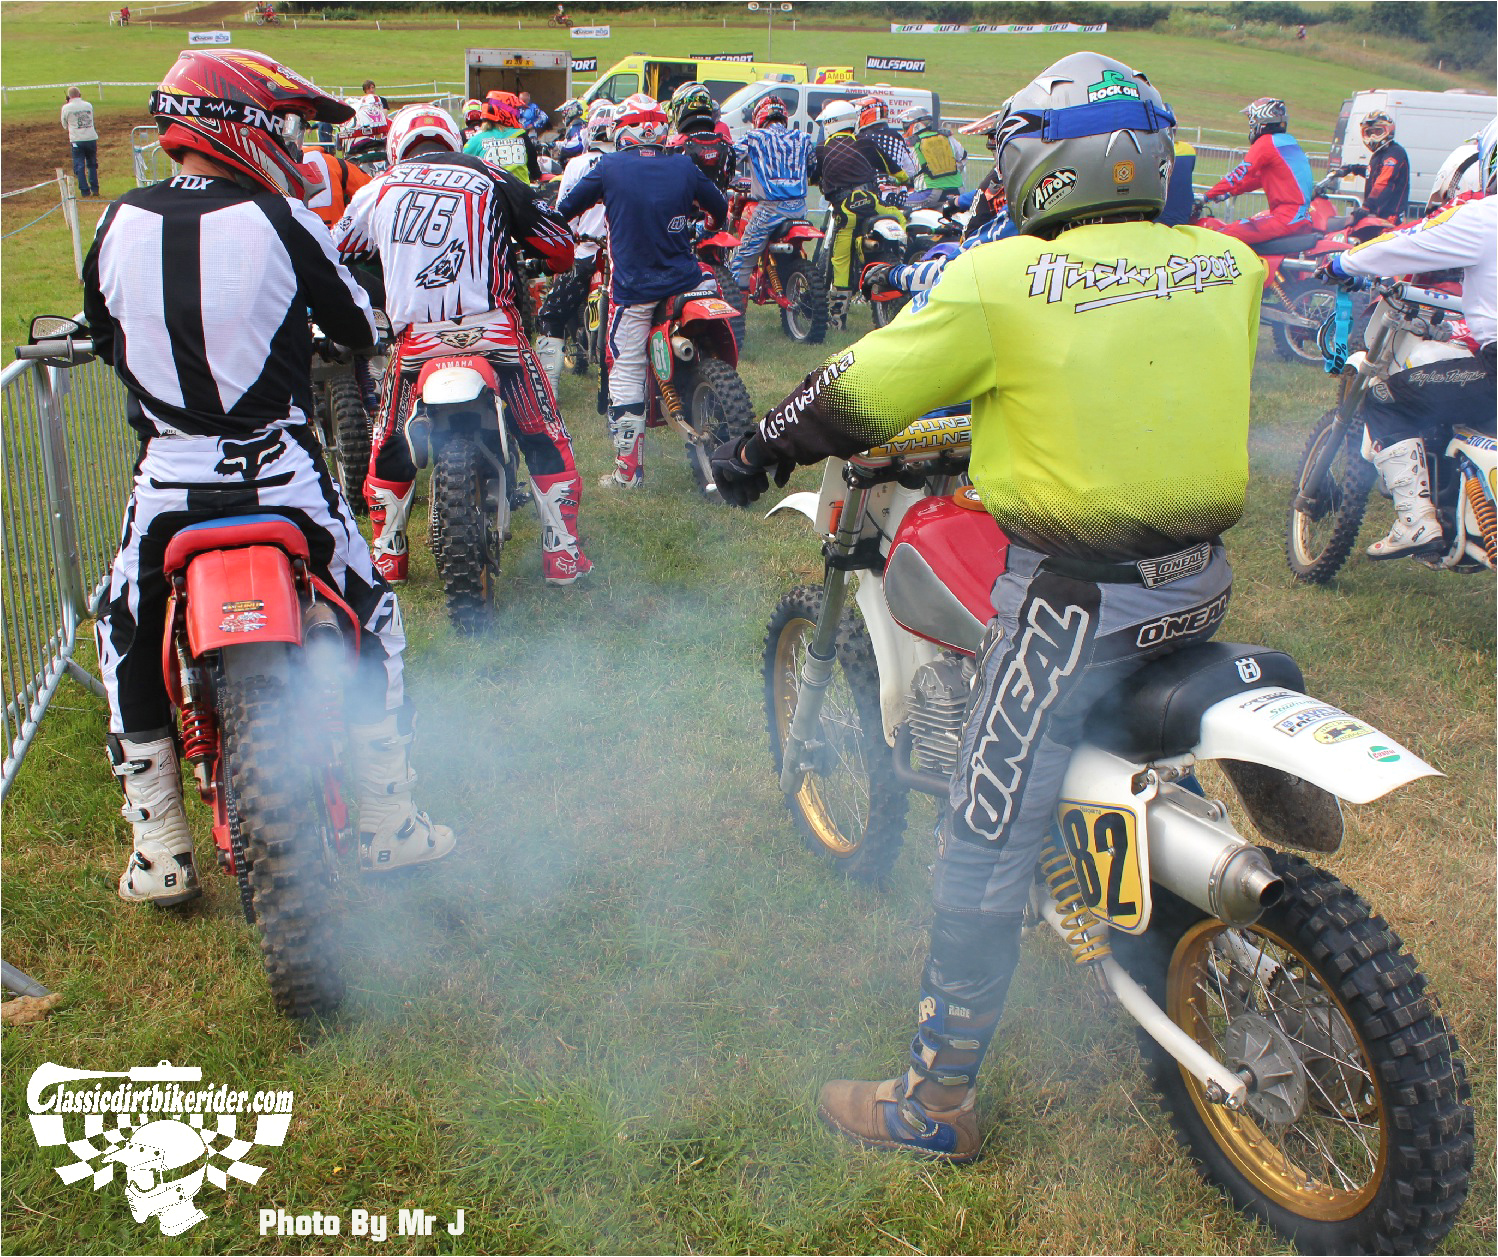 king of the castle 2015 photos Farleigh Castle twinshock motocross classicdirtbikerider.com 19